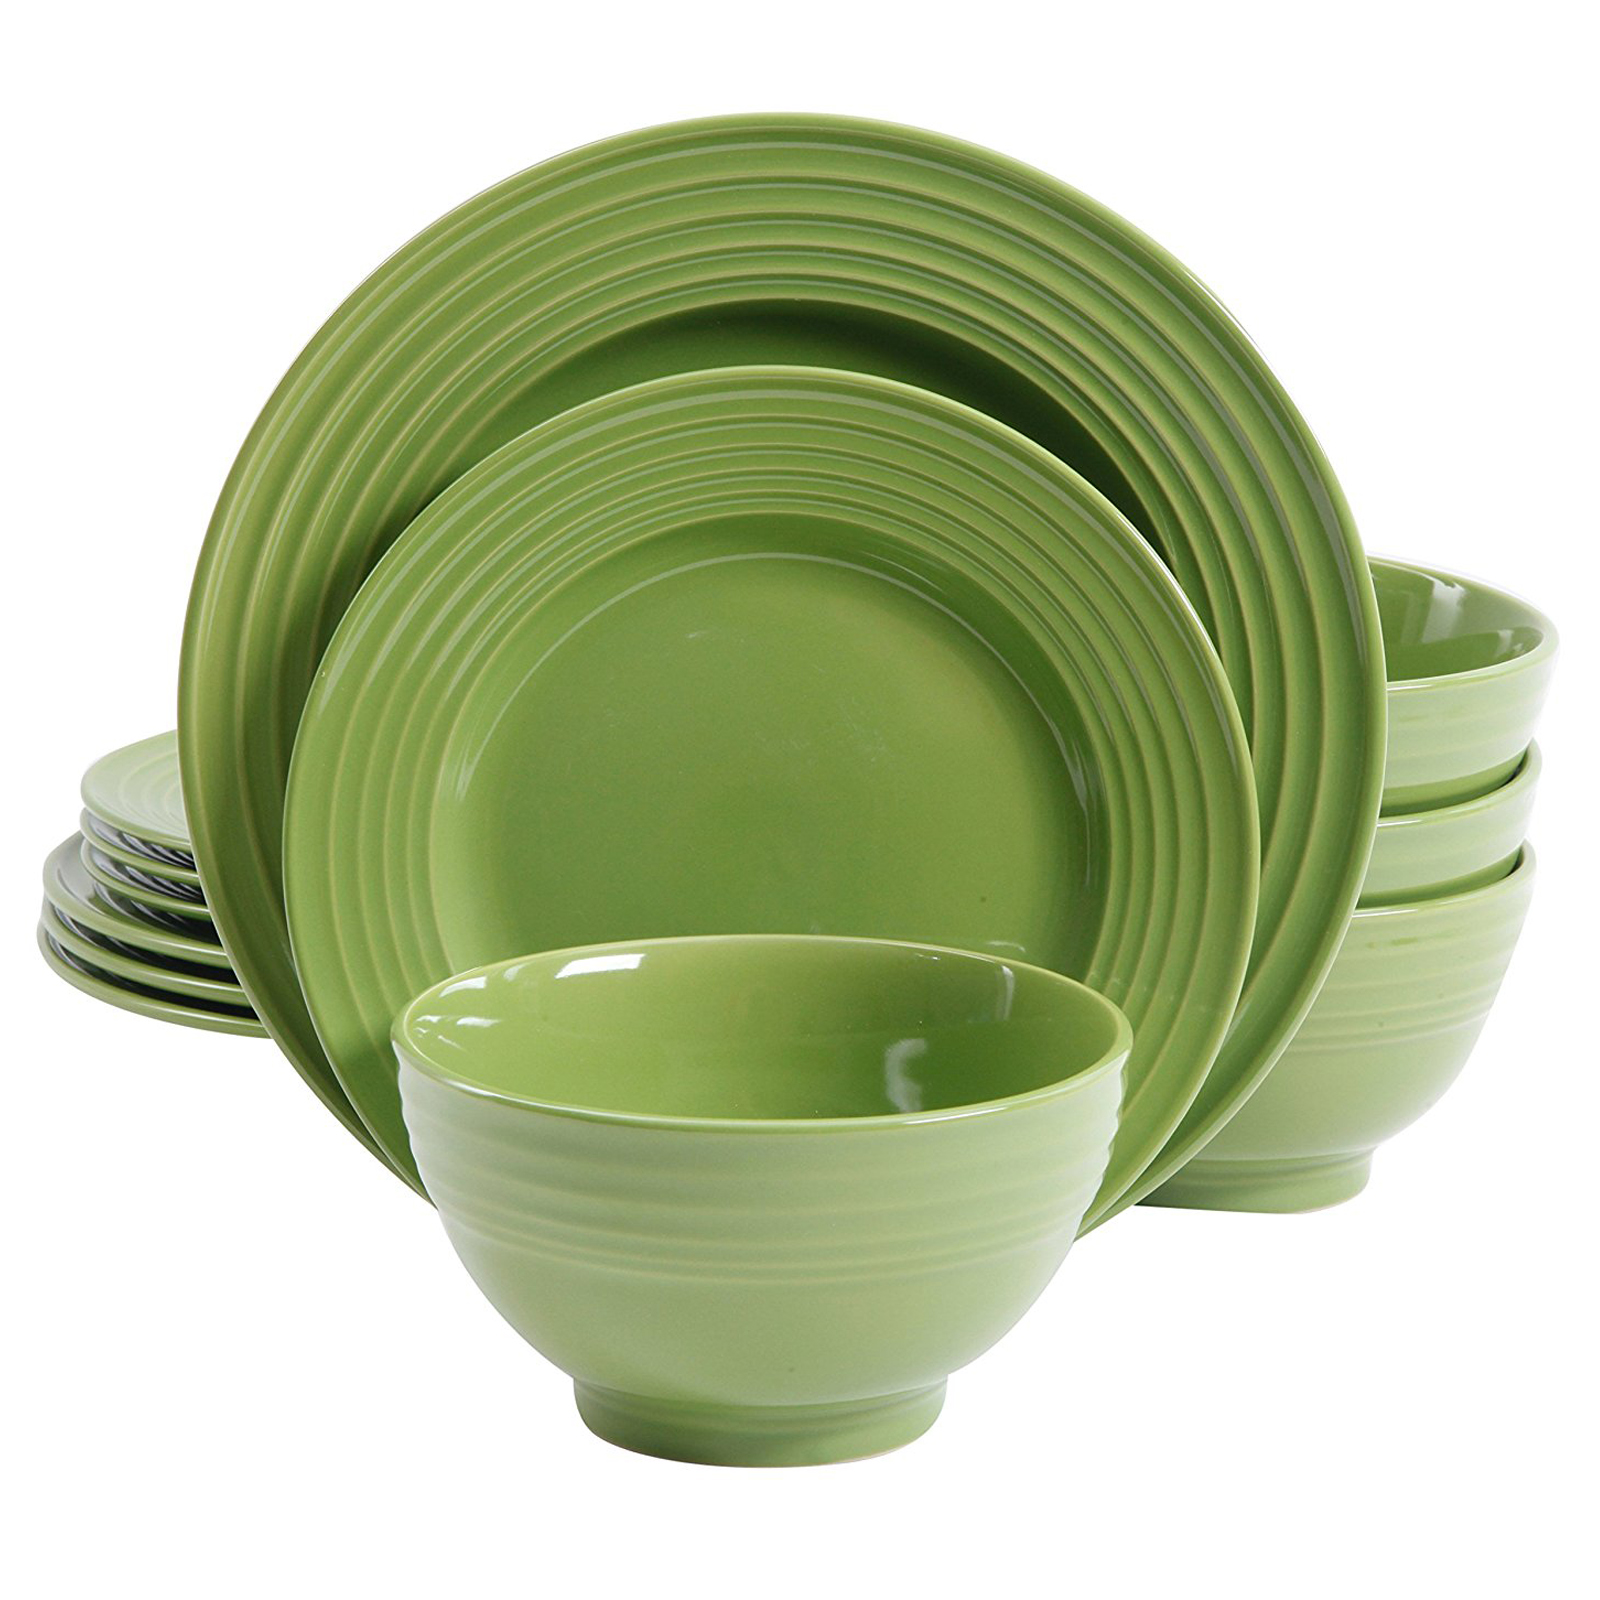 Plaza Cafe 12 pc Dinnerware Set - Green - Solid Color - Stoneware  sc 1 st  Walmart.com & Plaza Cafe 12 pc Dinnerware Set - Green - Solid Color - Stoneware ...